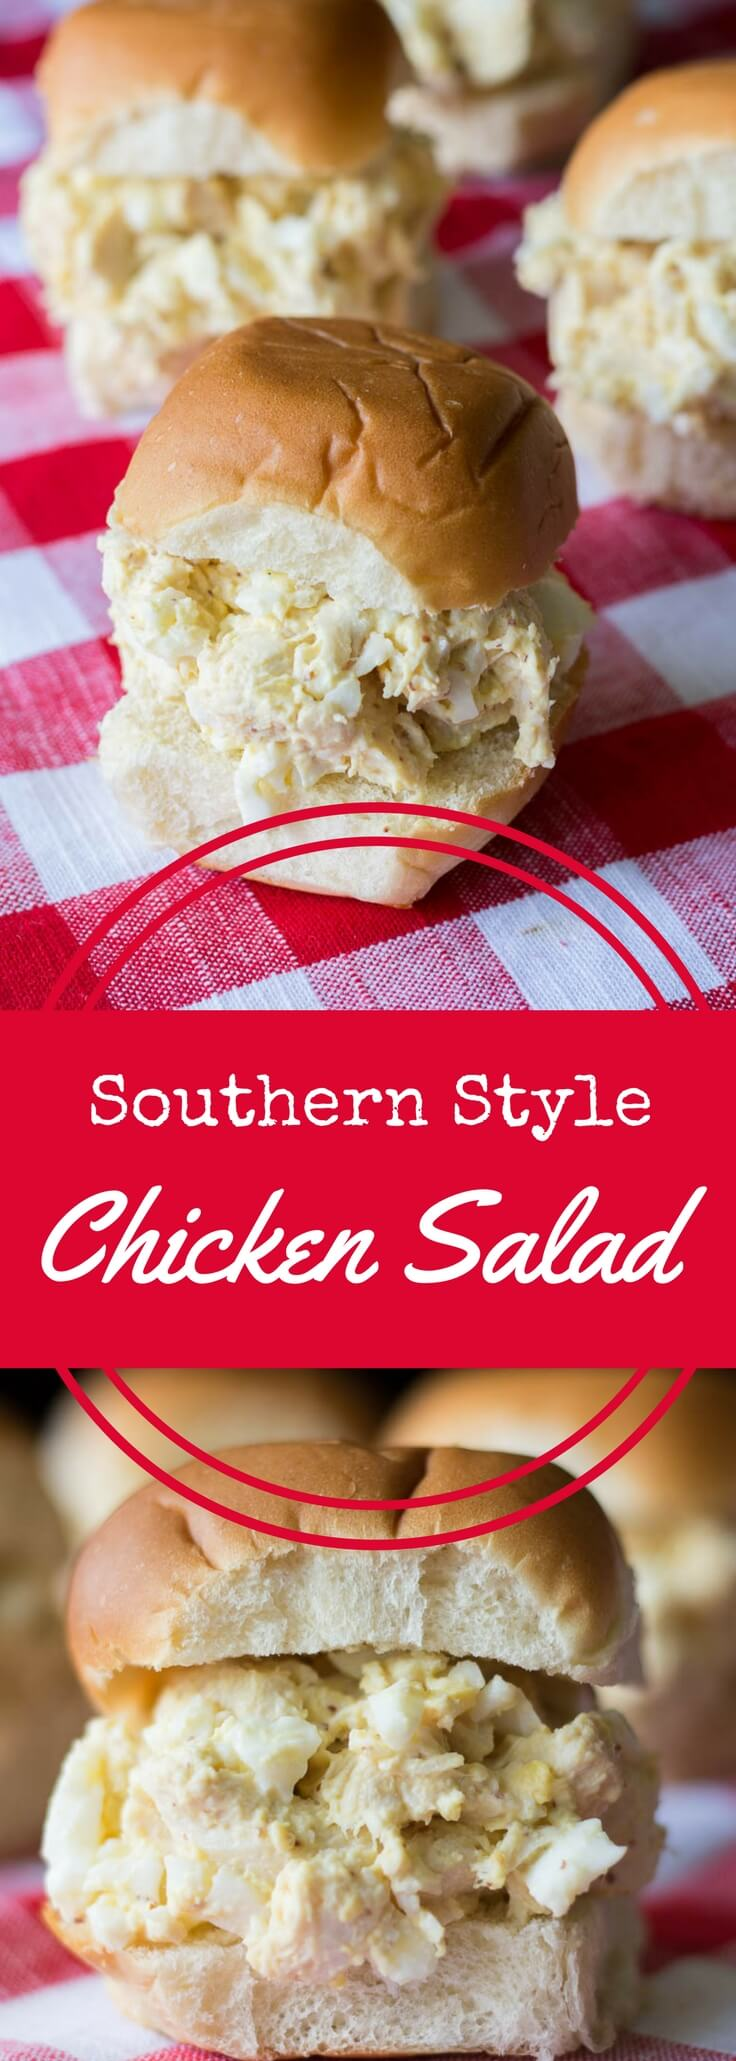 Southern Chicken Salad Sandwiches are made with chicken, mayo, coarse ground mustard, and eggs for a rich and satisfying flavor.